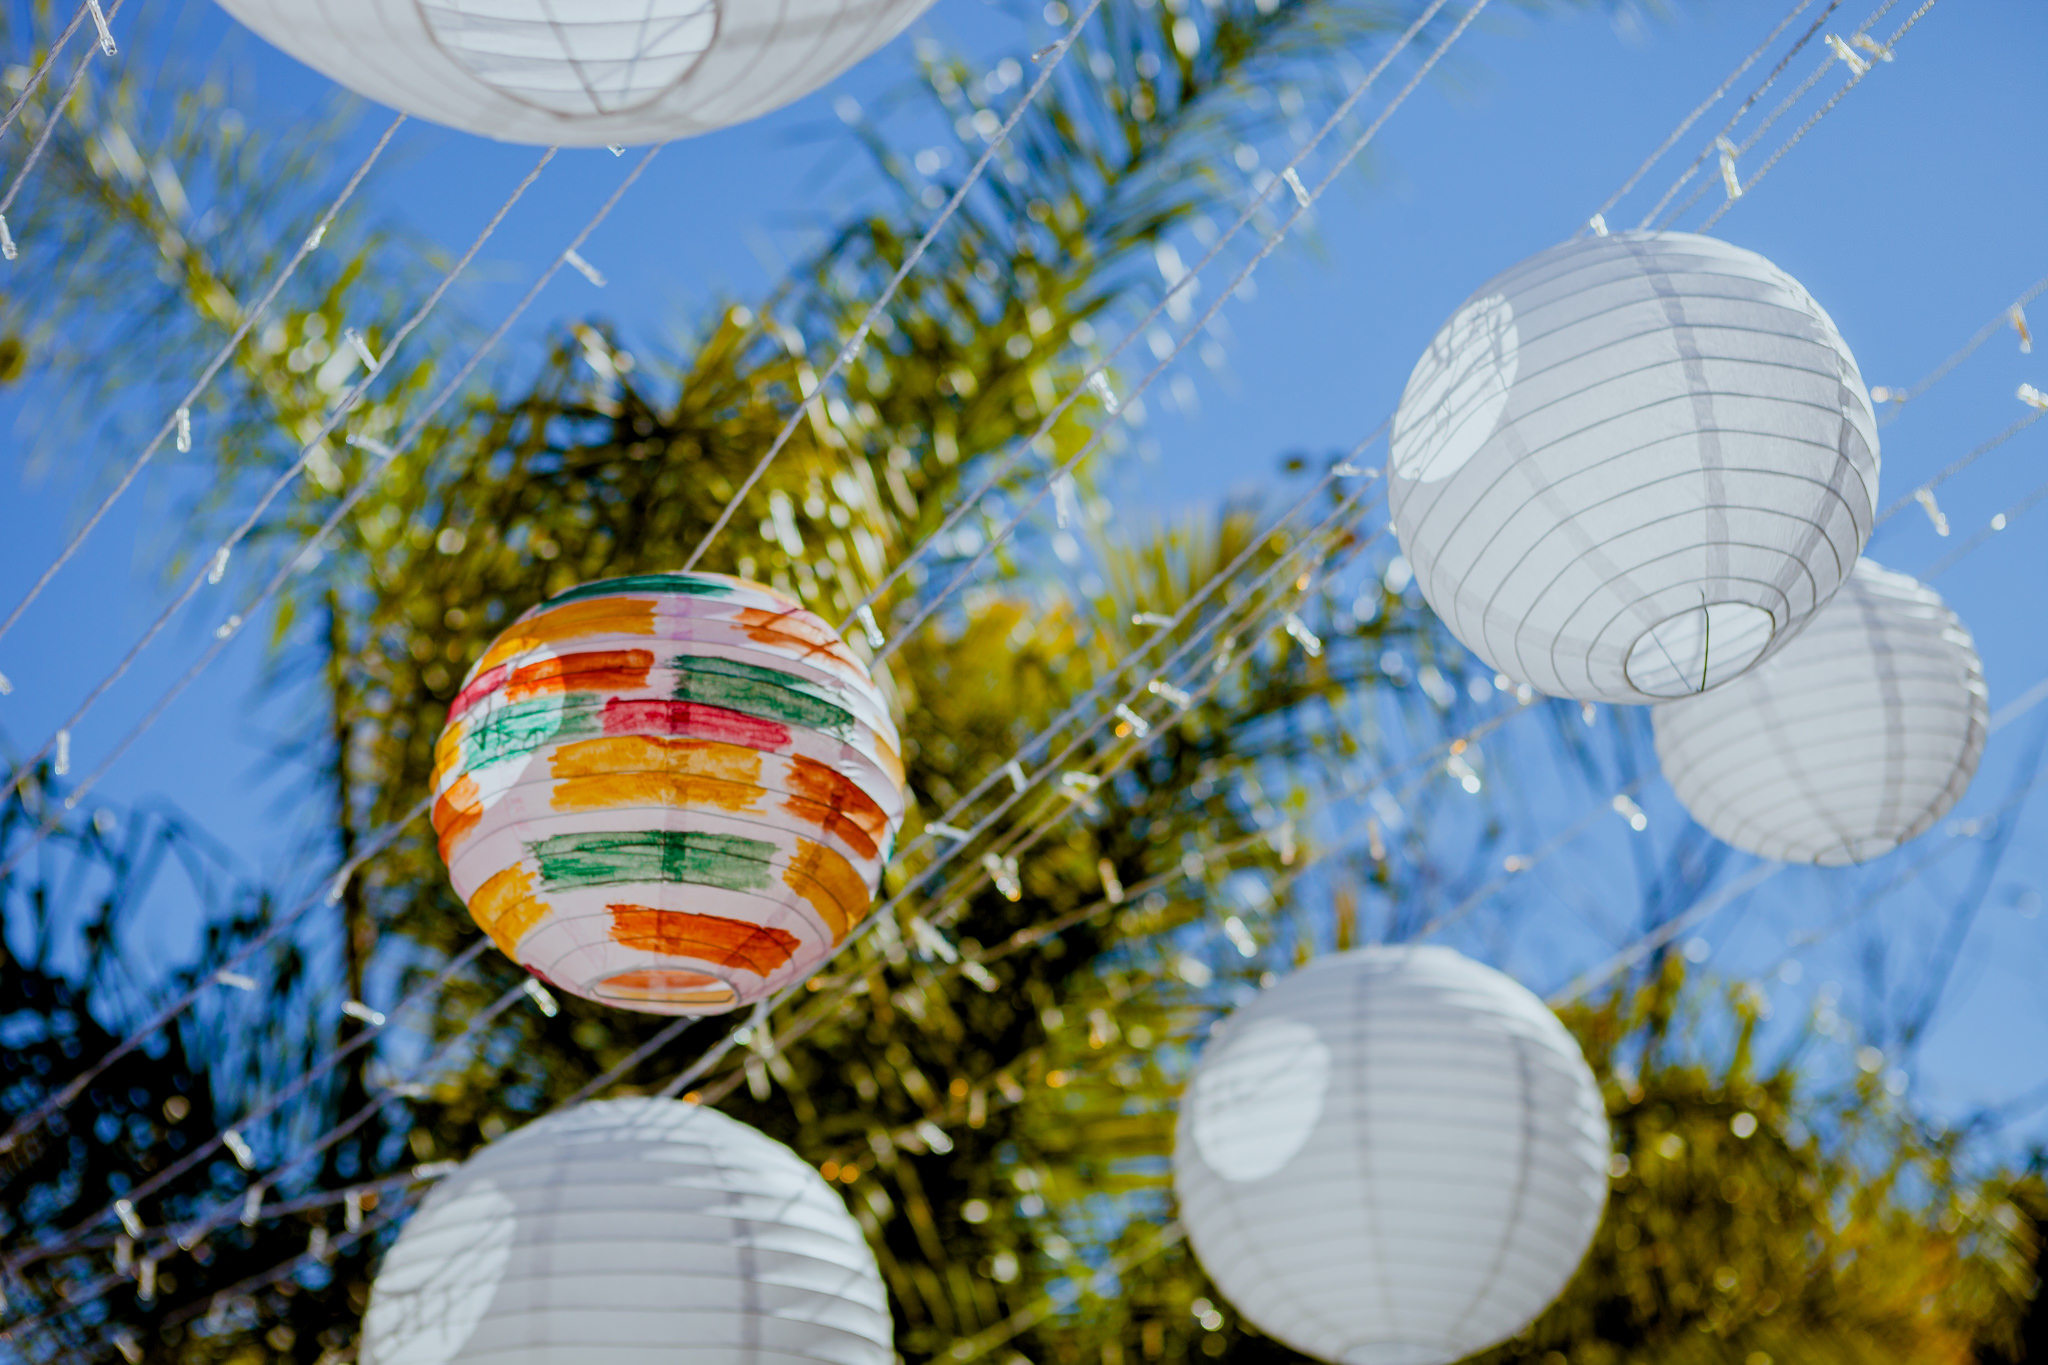 White lanterns strung up on lines of fairy lights, with one lantern painted colourfully